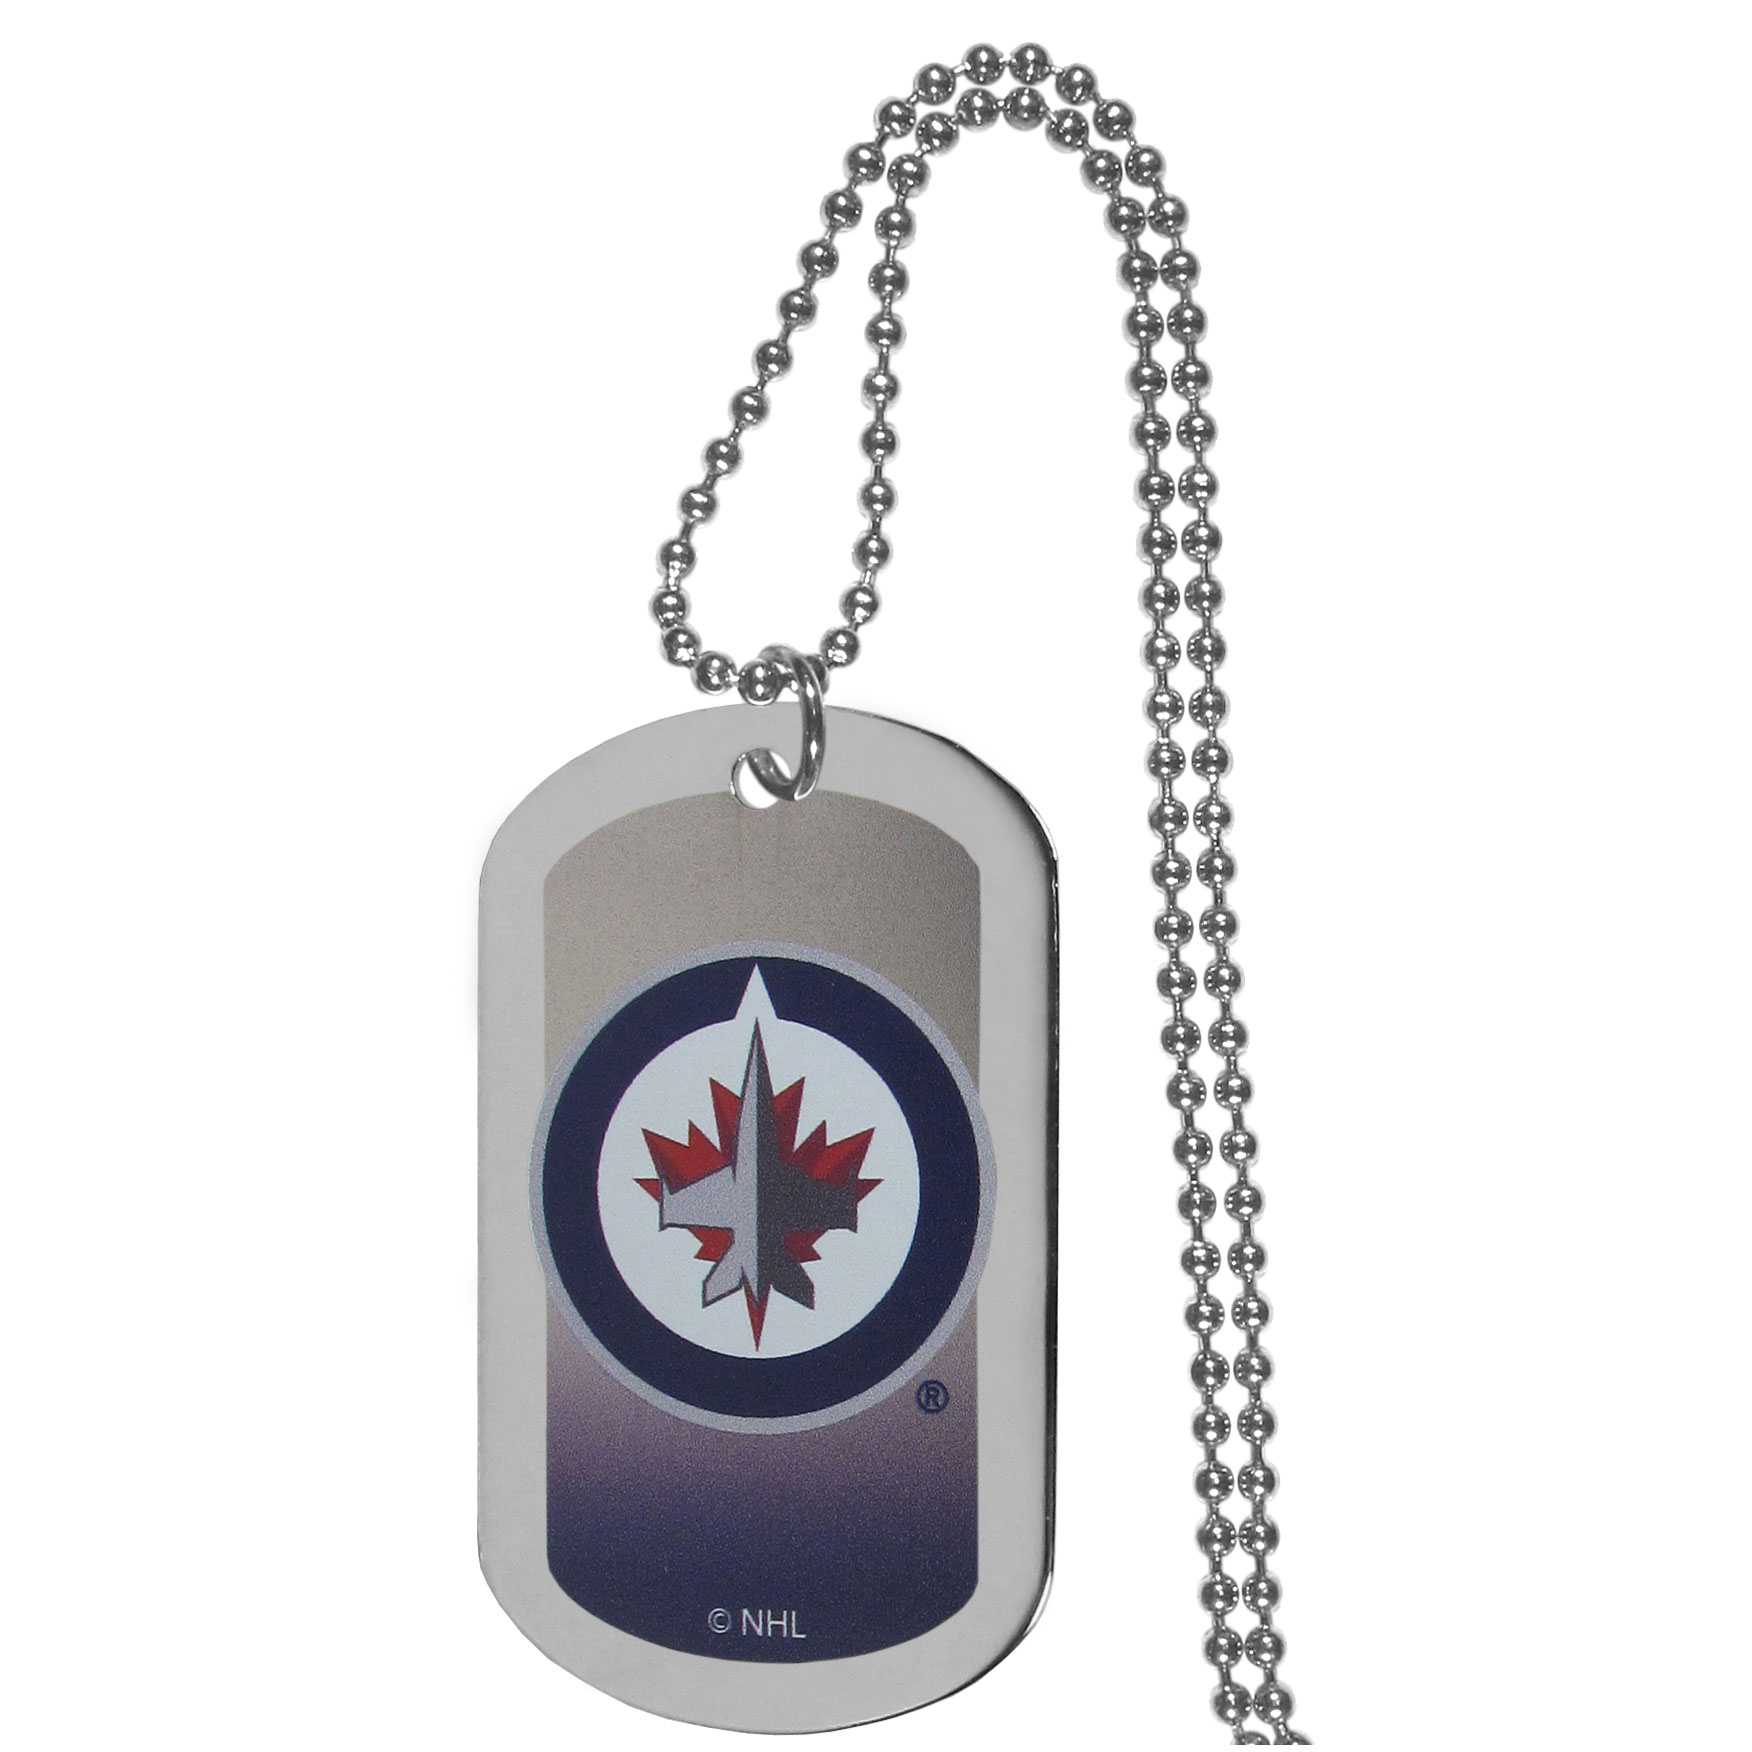 Winnipeg Jets™ Team Tag Necklace - Dog tag necklaces are a fashion statement that is here to stay. The sporty version of the classic tag features a gradient print in team colors featuring a full color team logo over a high polish tag to create a bold and sporty look. The tag comes on a 26 inch ball chain with a ball and joint clasp. Any Winnipeg Jets™ would be proud to wear this attractive fashion accessory.